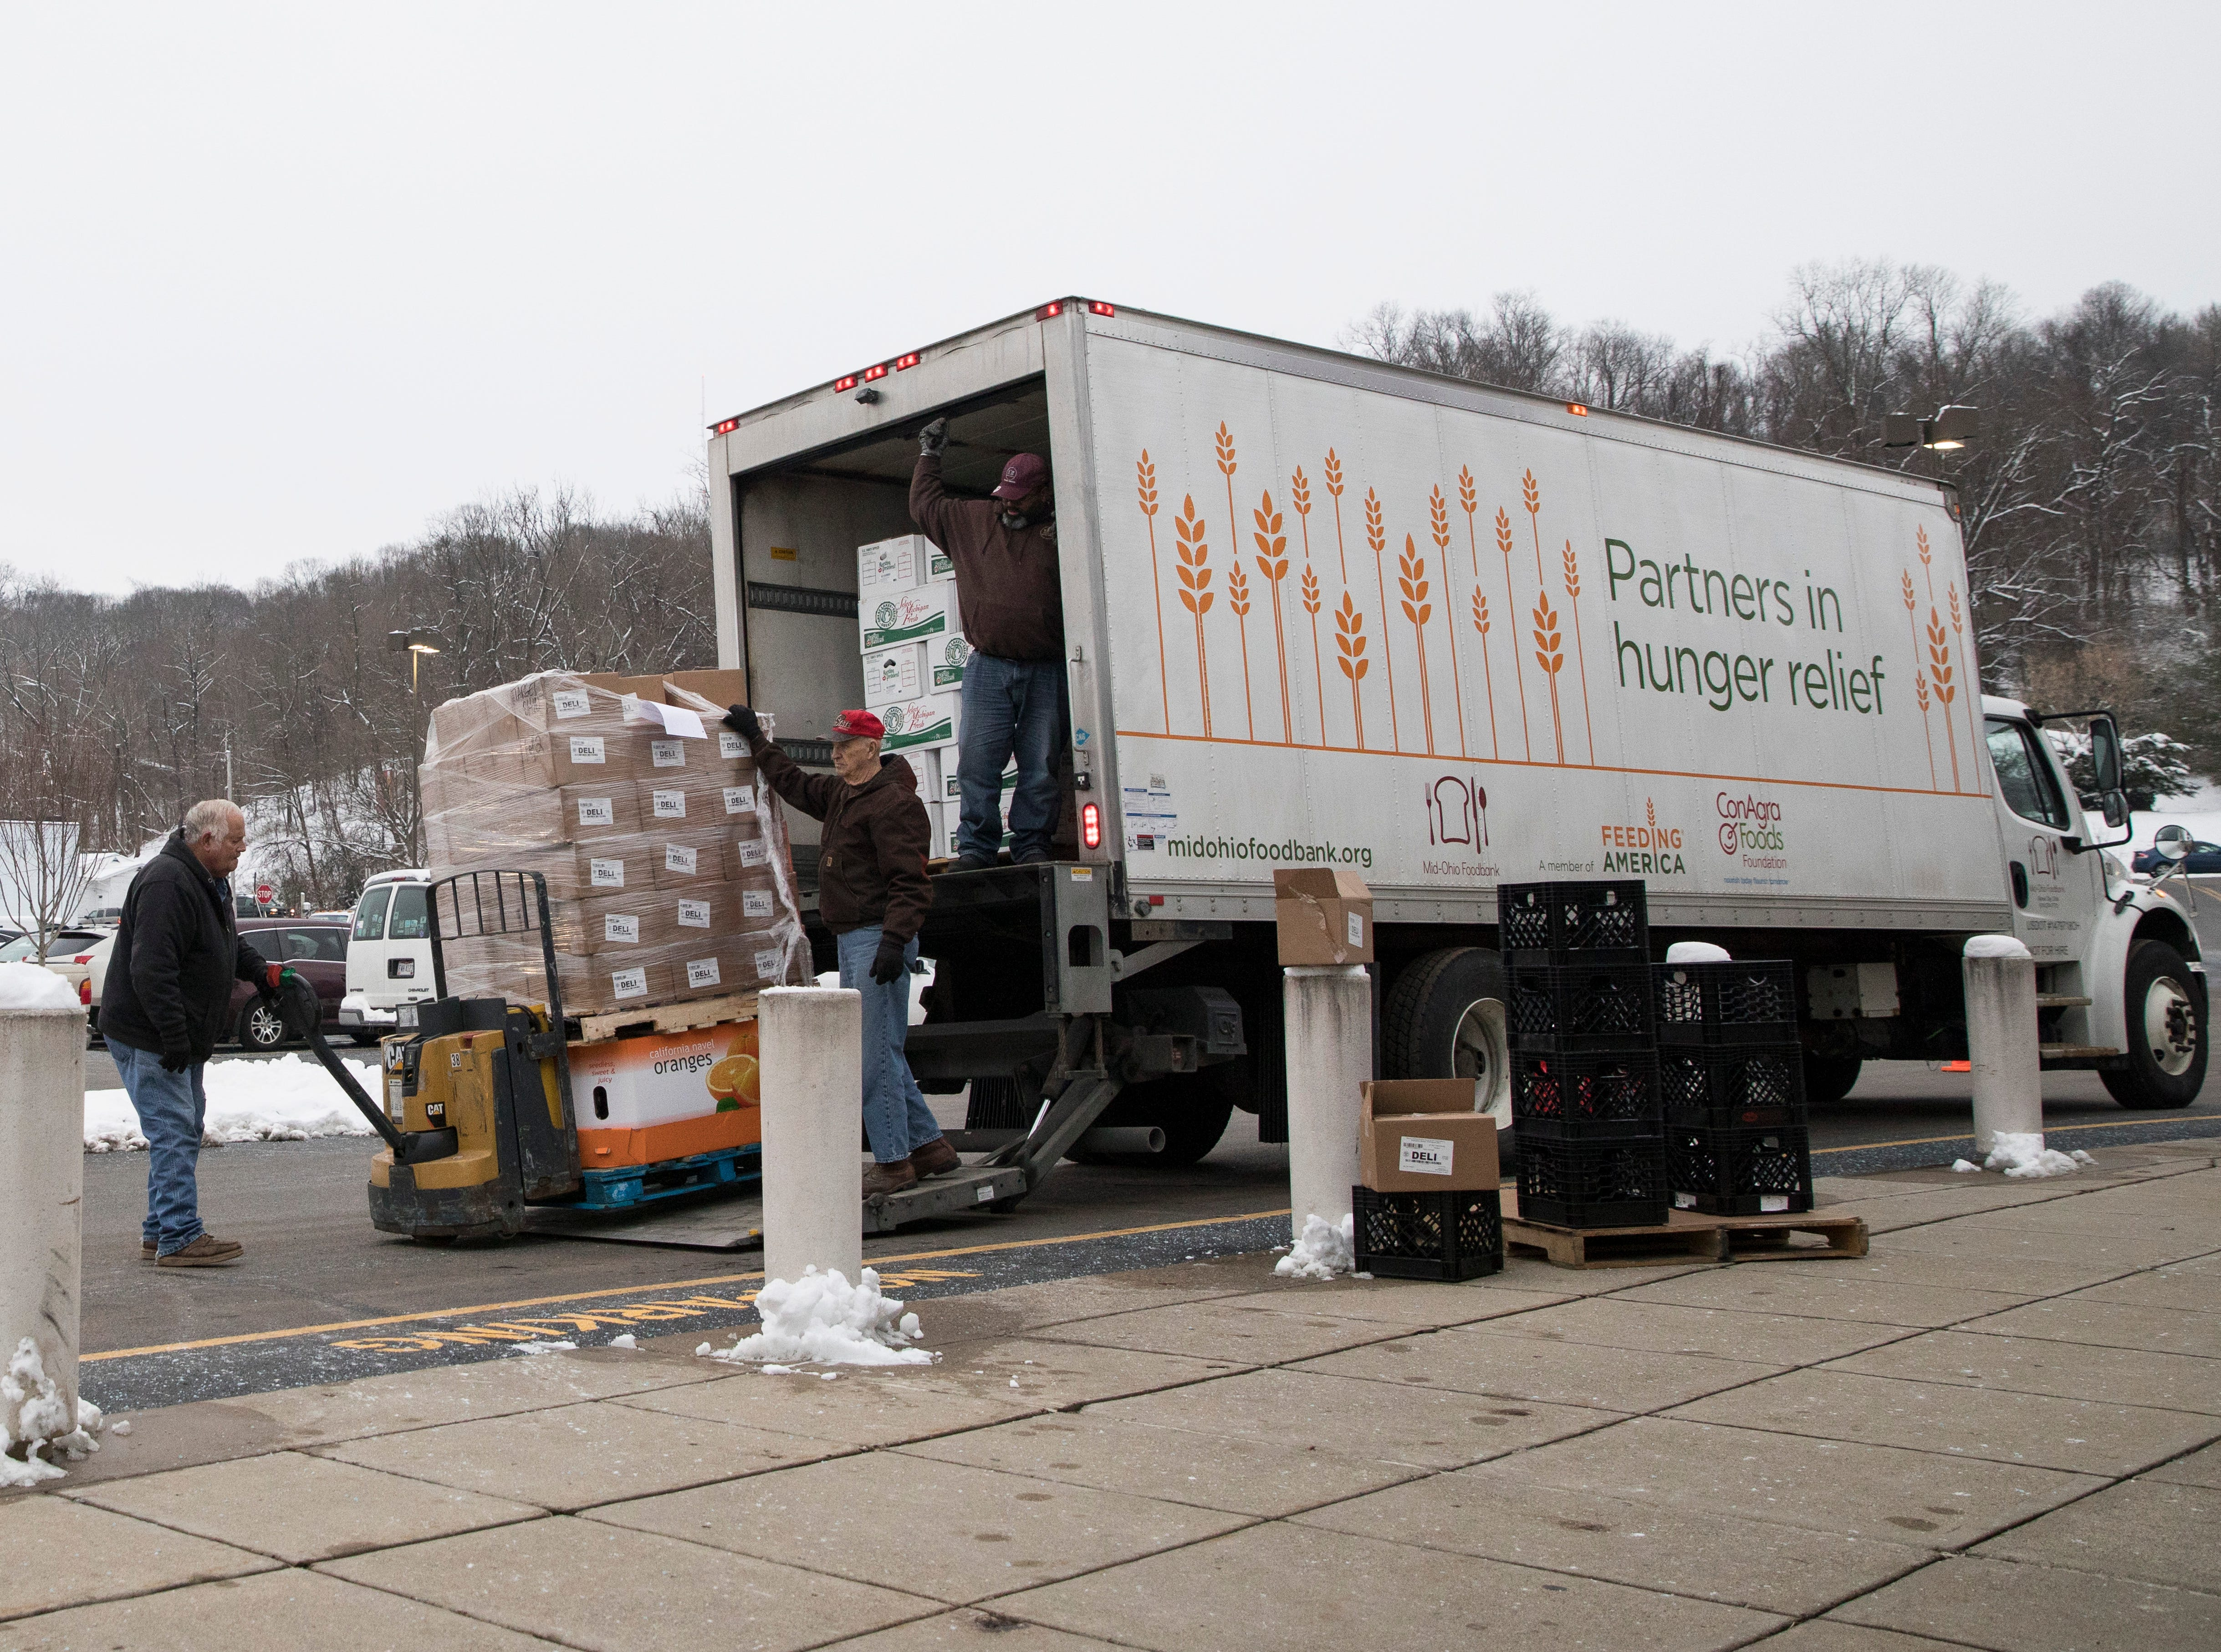 Gerald Gallagher, left, helps Randall Bland transport food from the Mid-Ohio Valley Food Bank truck to those waiting inside during the Mobile Market in Chillicothe, Ohio.